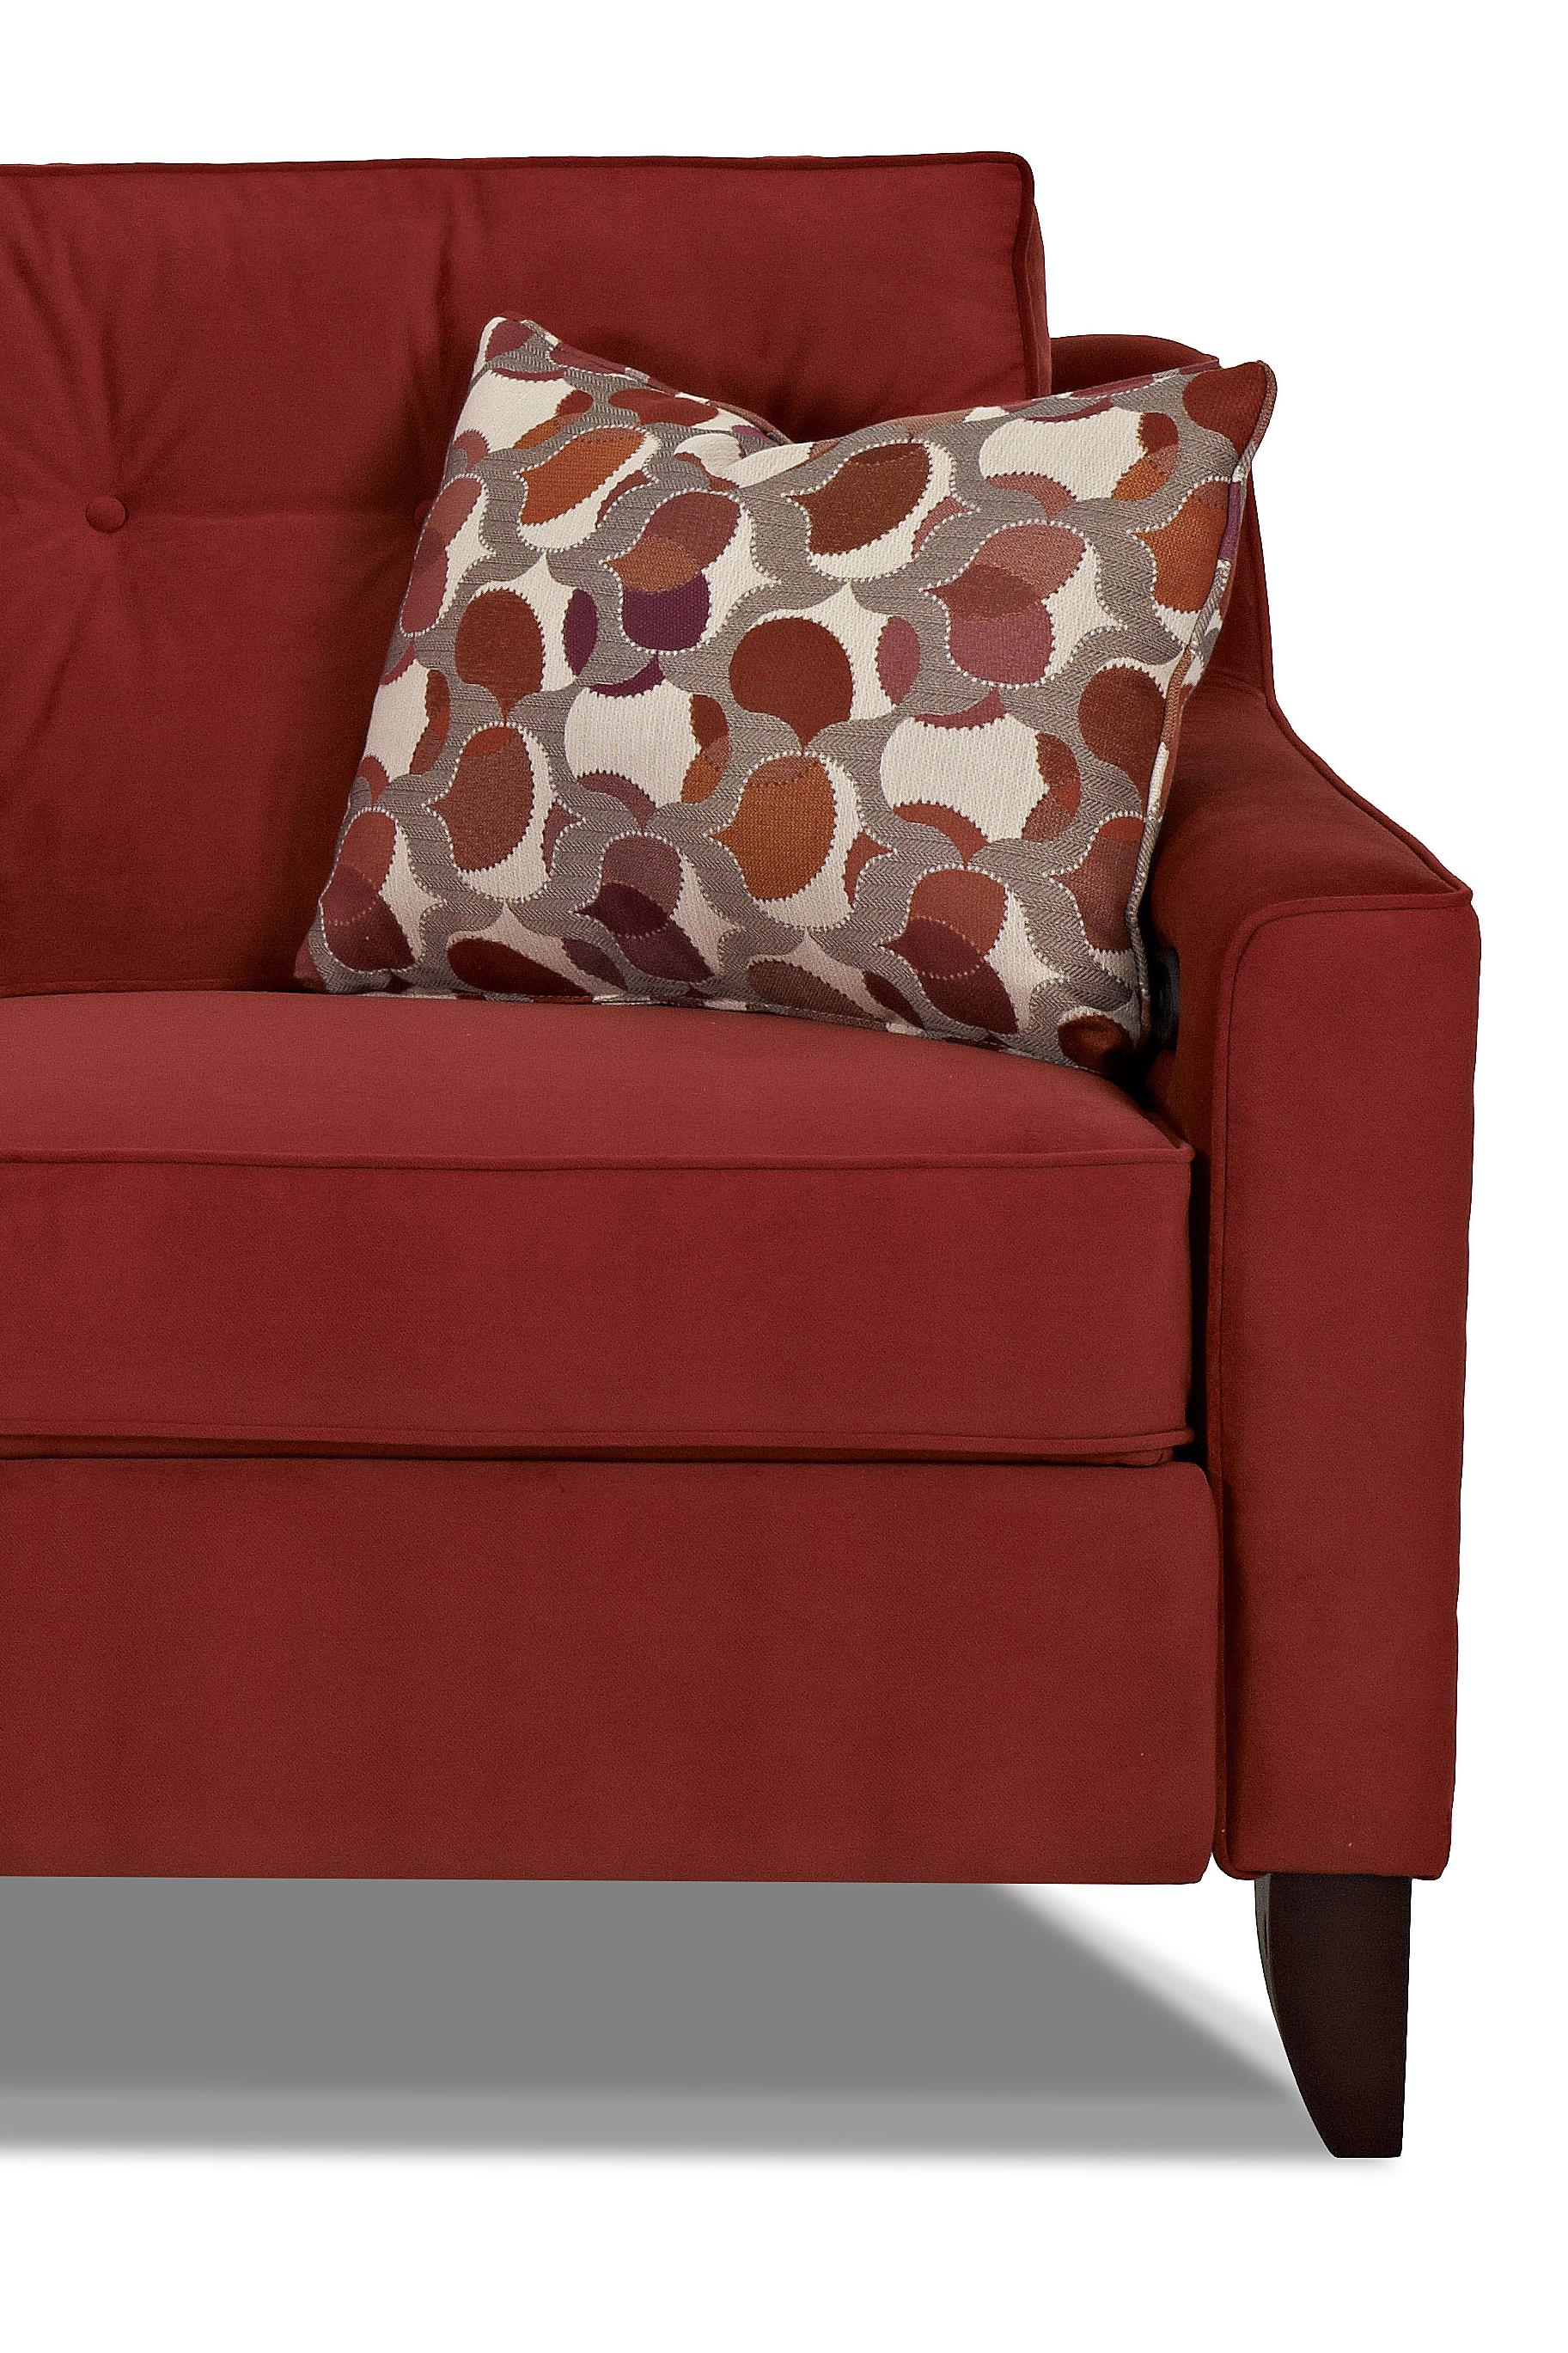 Trisha Yearwood Home Collection by Klaussner Audrina Contemporary